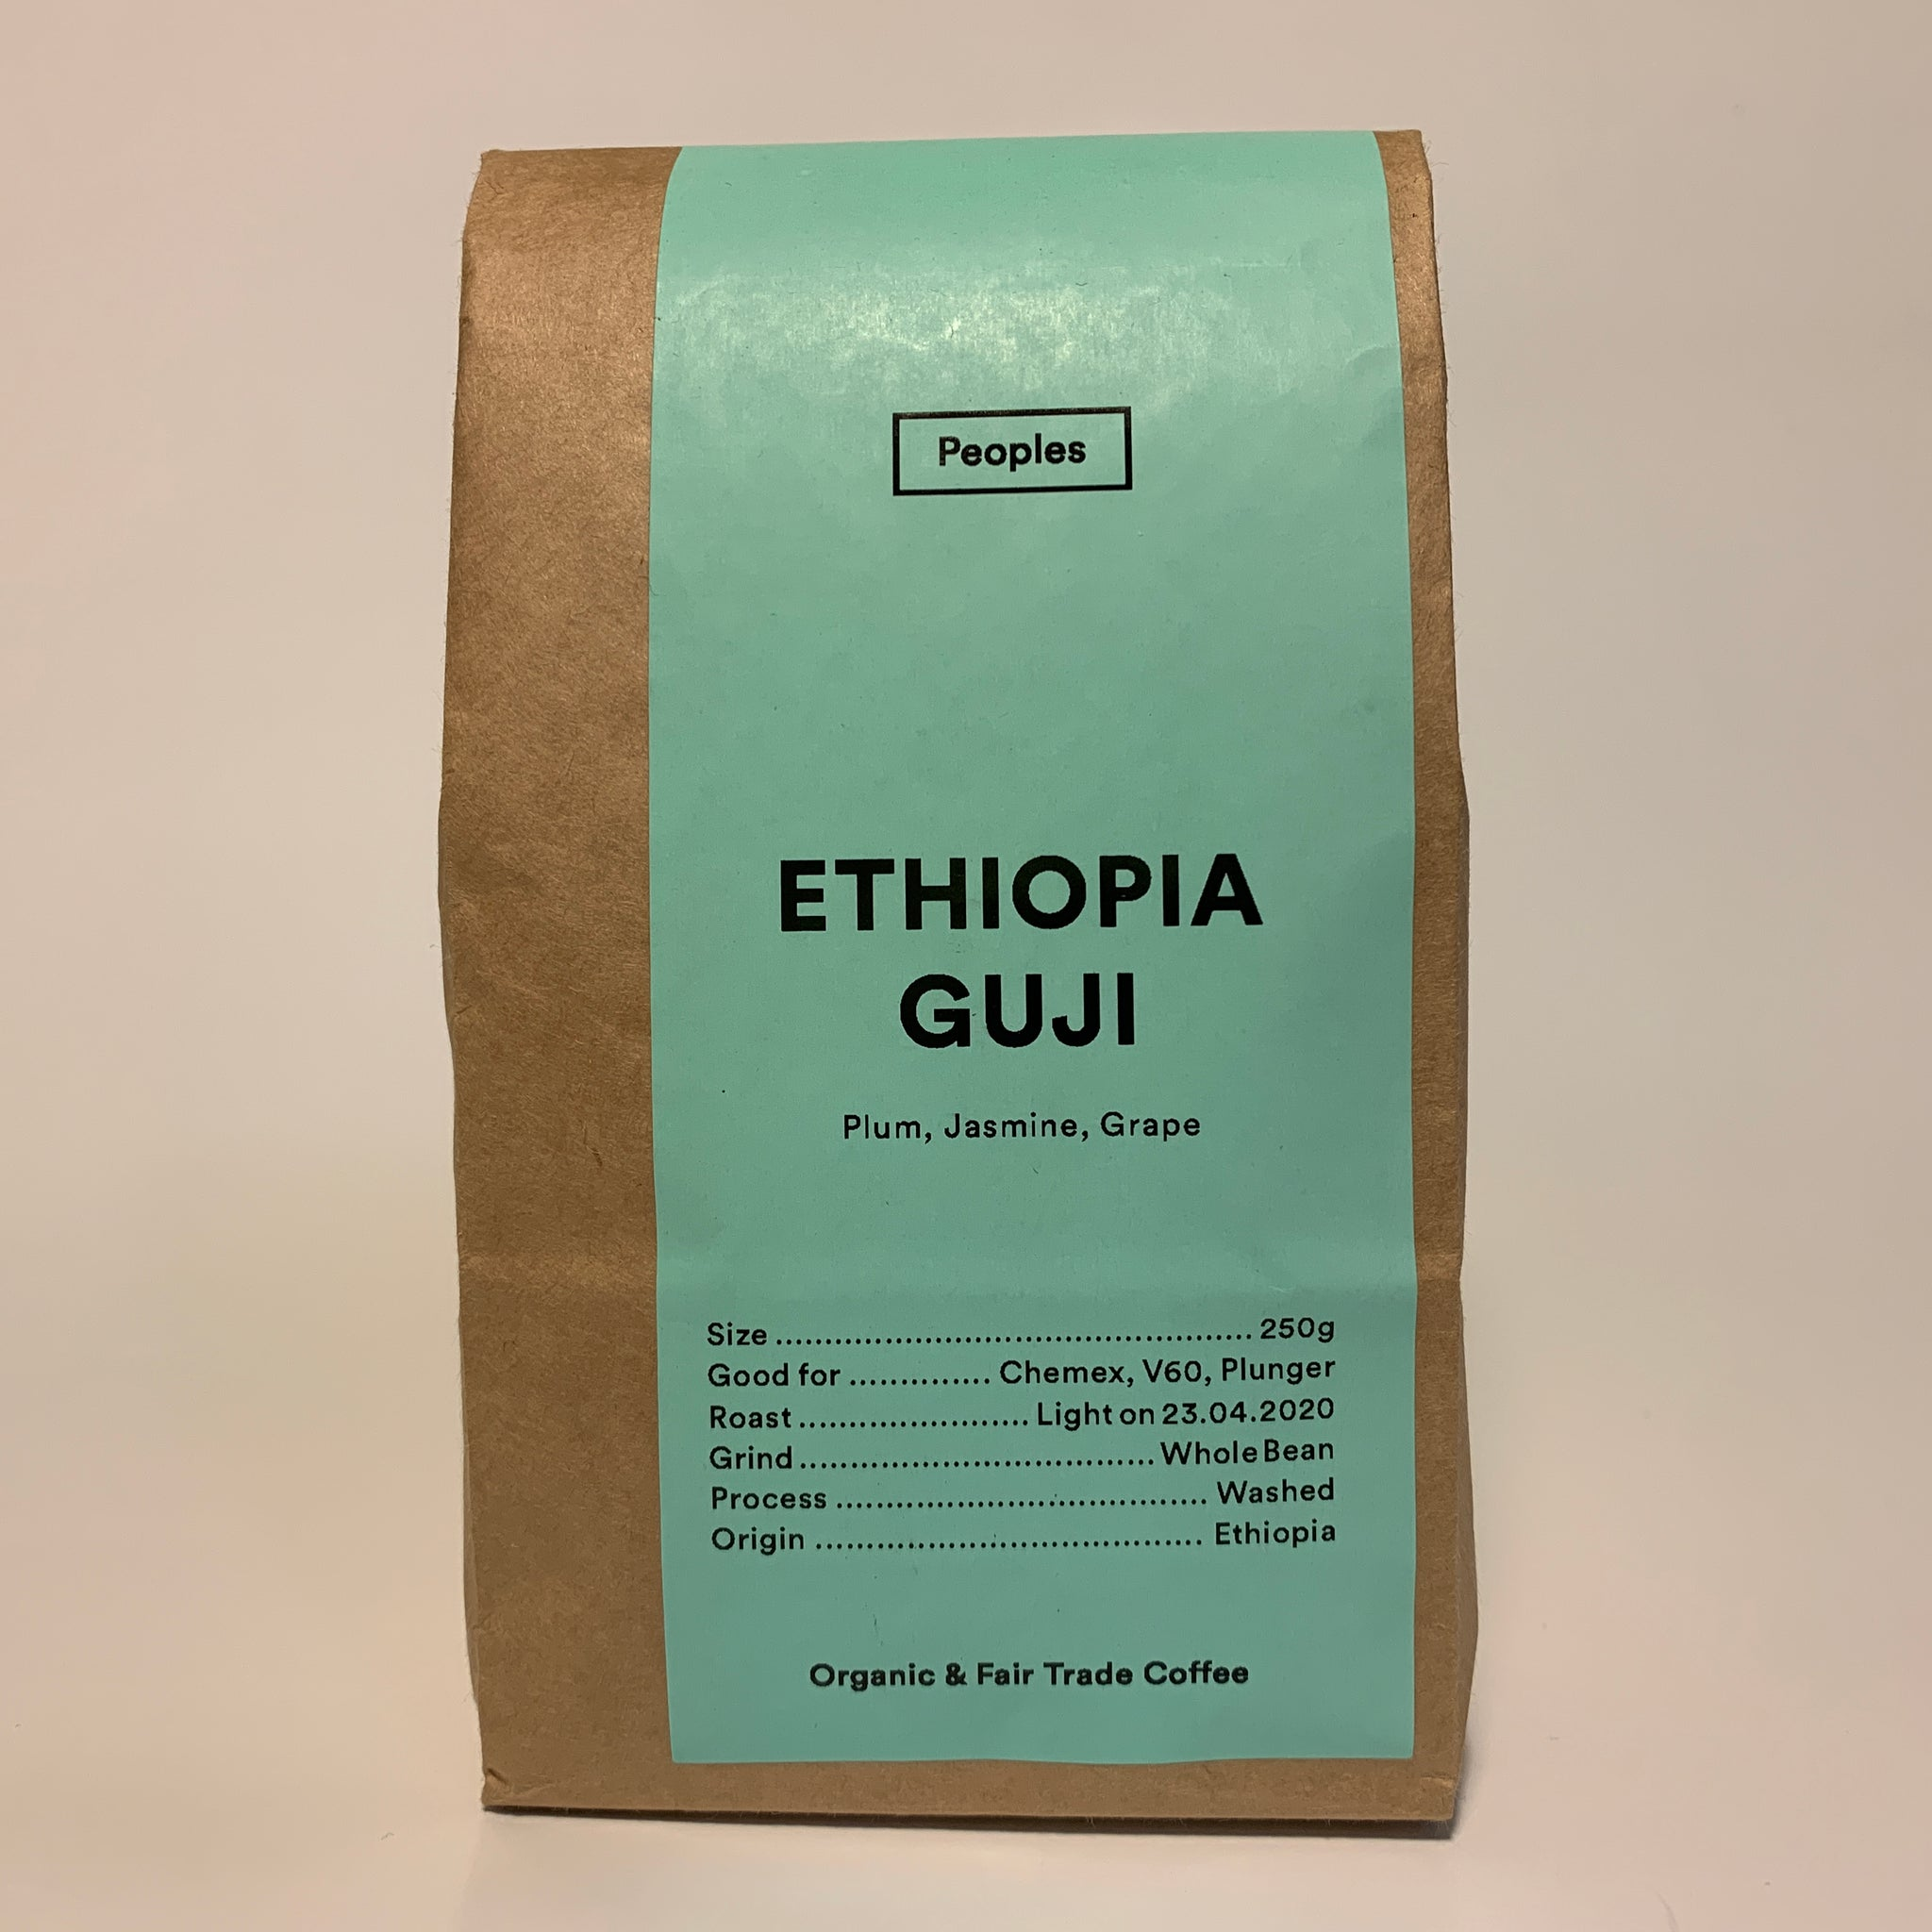 Ethiopia Guji by Peoples Coffee